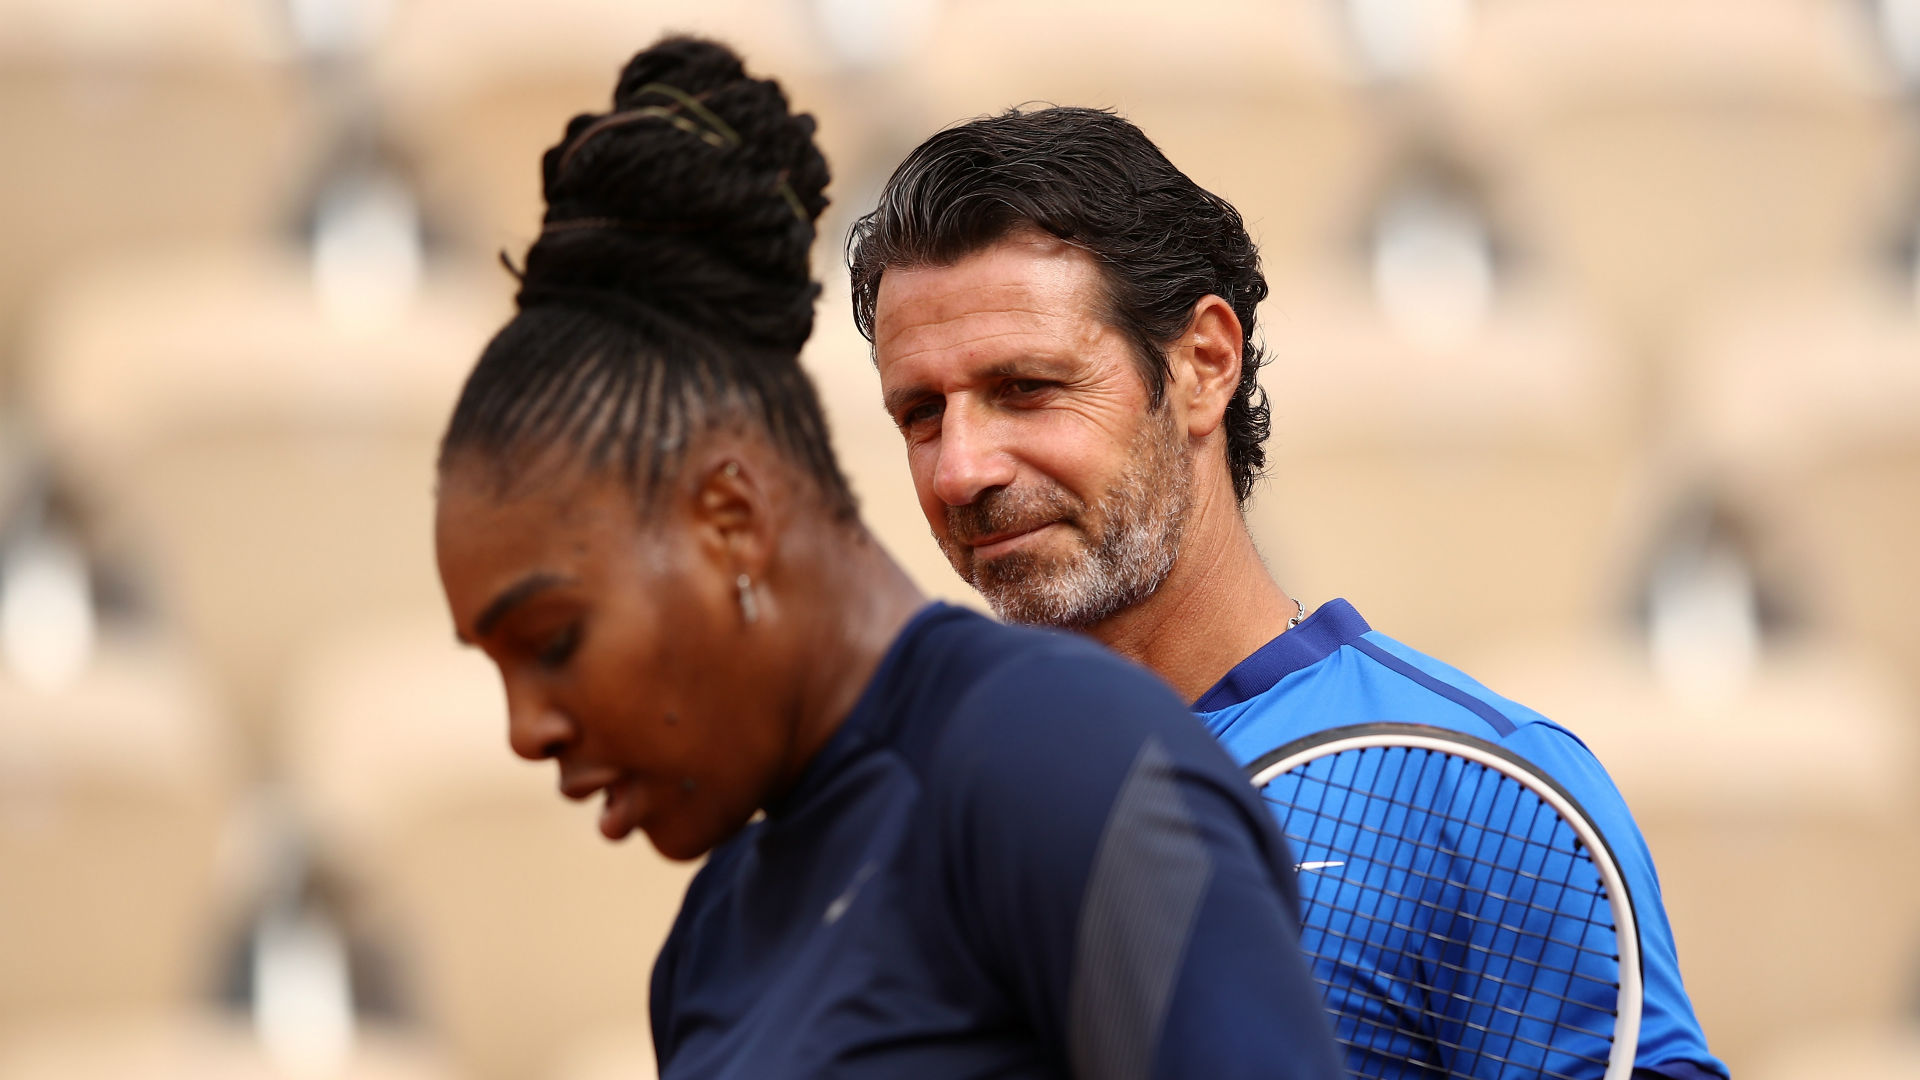 Serena Williams will be 'dangerous' at Wimbledon, her coach warns